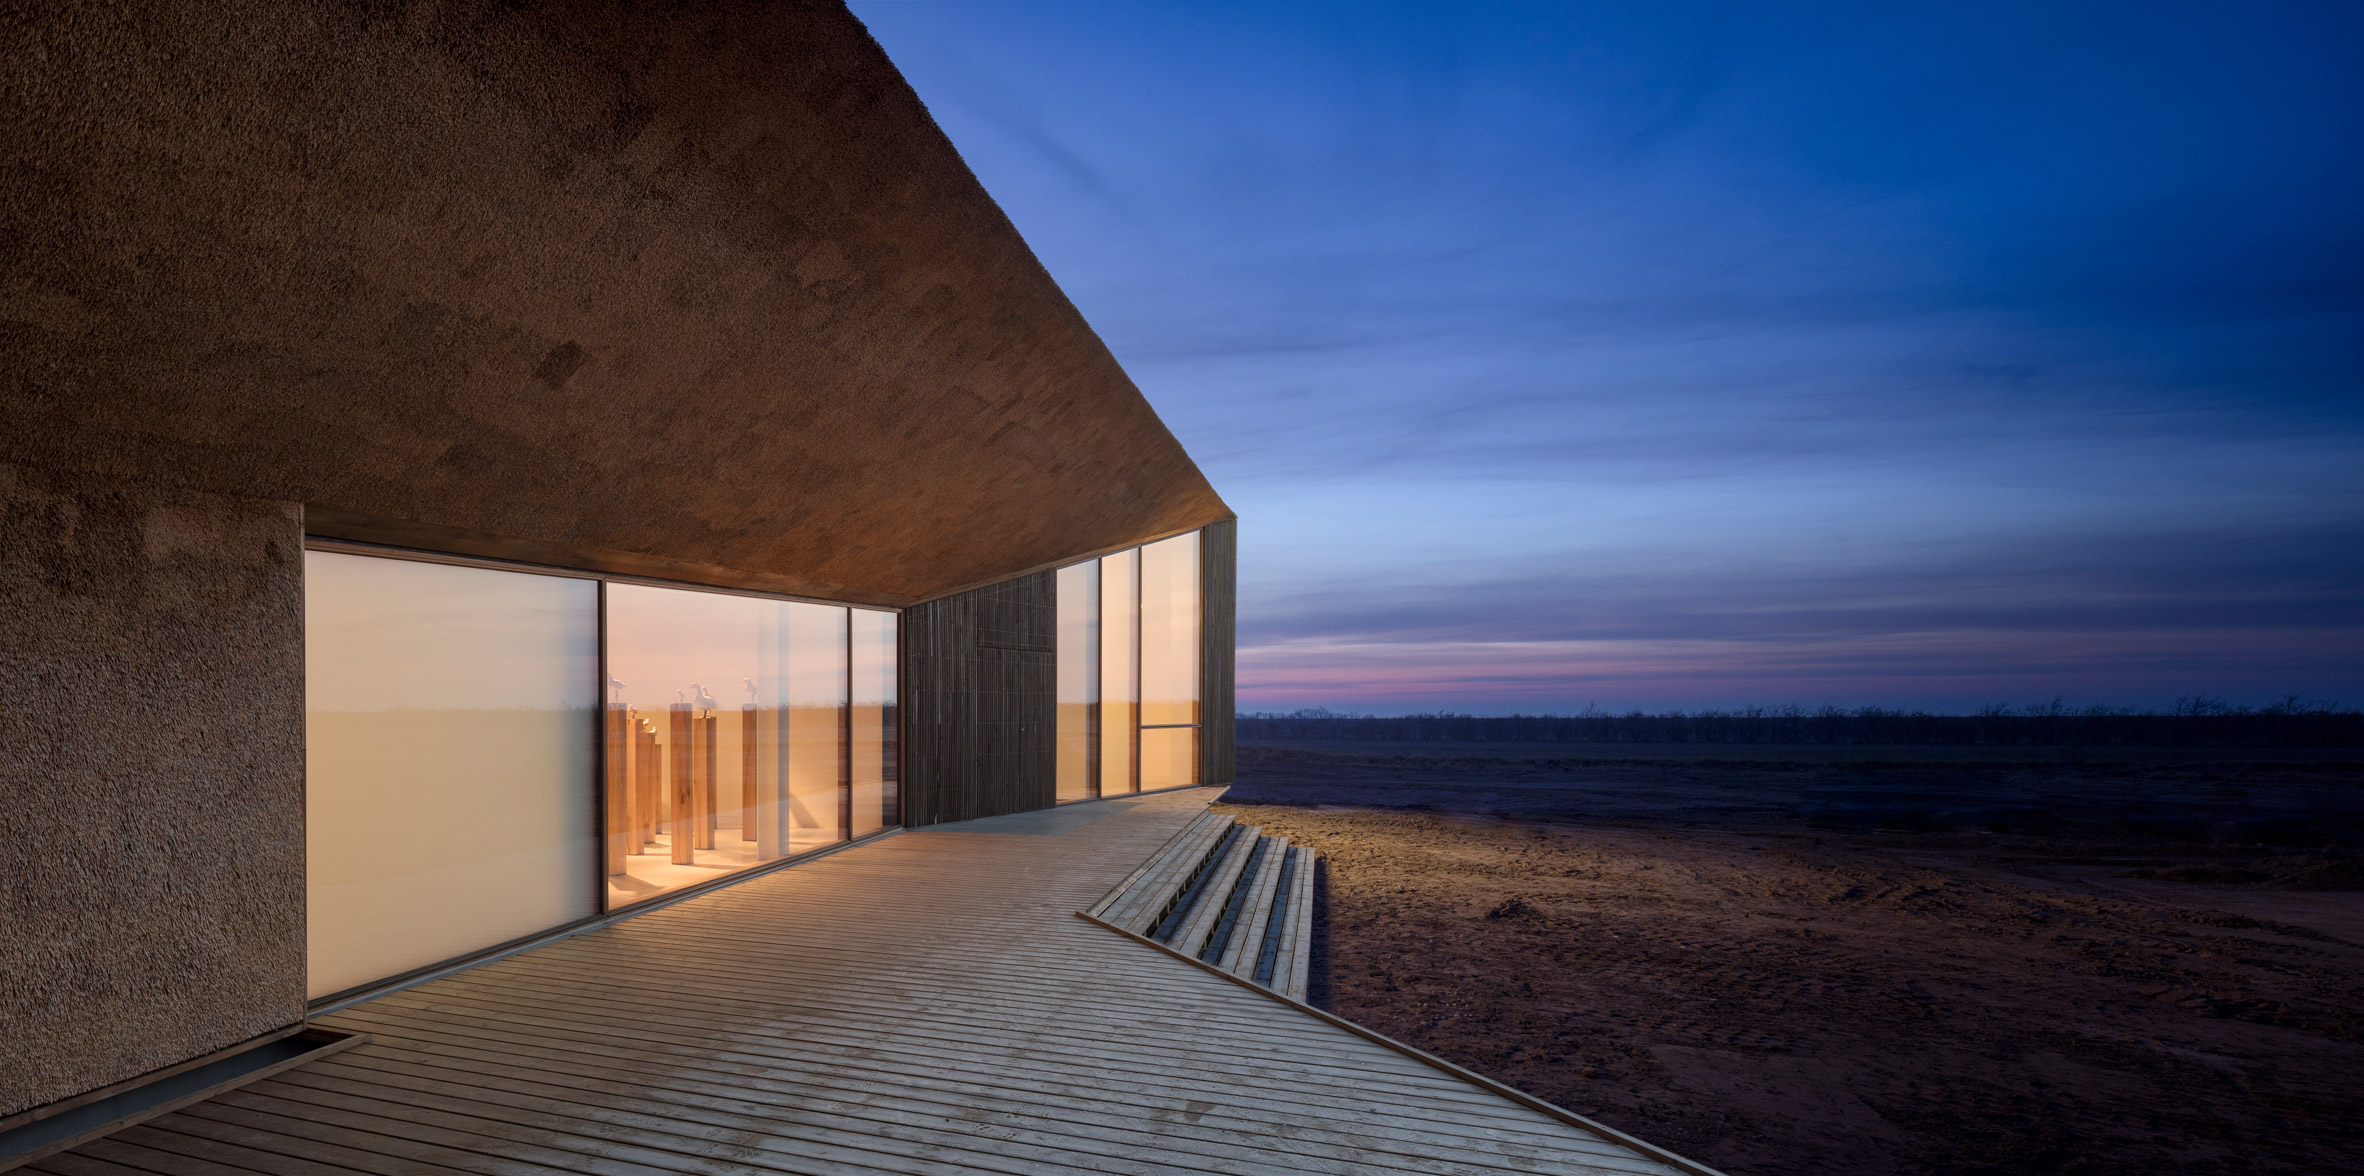 Dorte Mandrup adds thatched wing to Wadden Sea visitor centre in Denmark